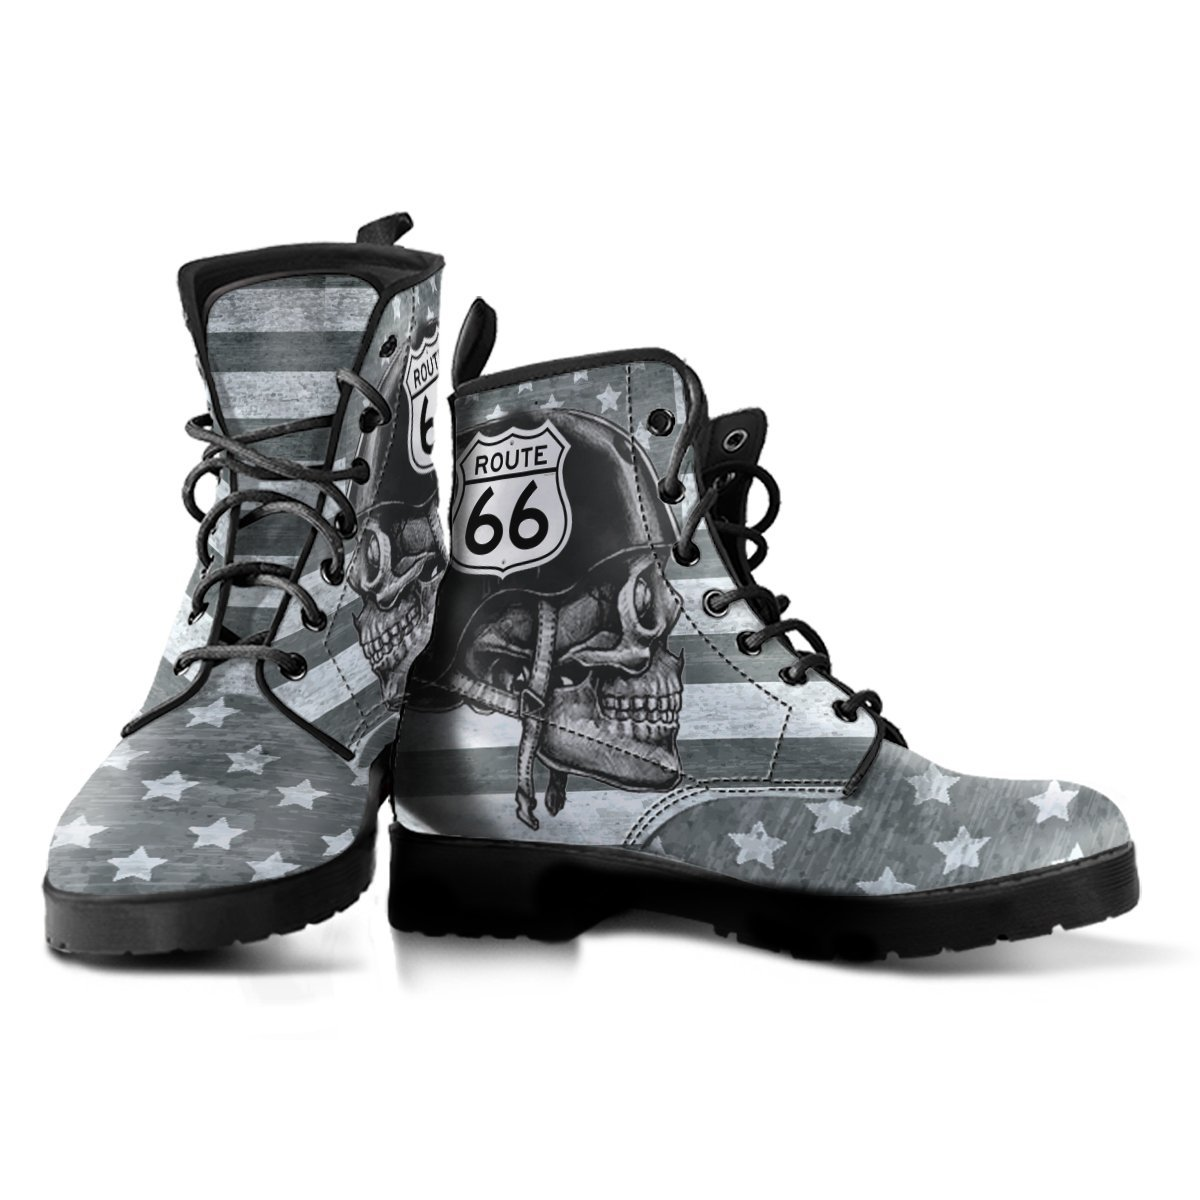 As You Can See A Variety Of Designs Are Offered Flags Skulls And Bikes Several The Favorite Images Used One Pair Boots Features Large Route